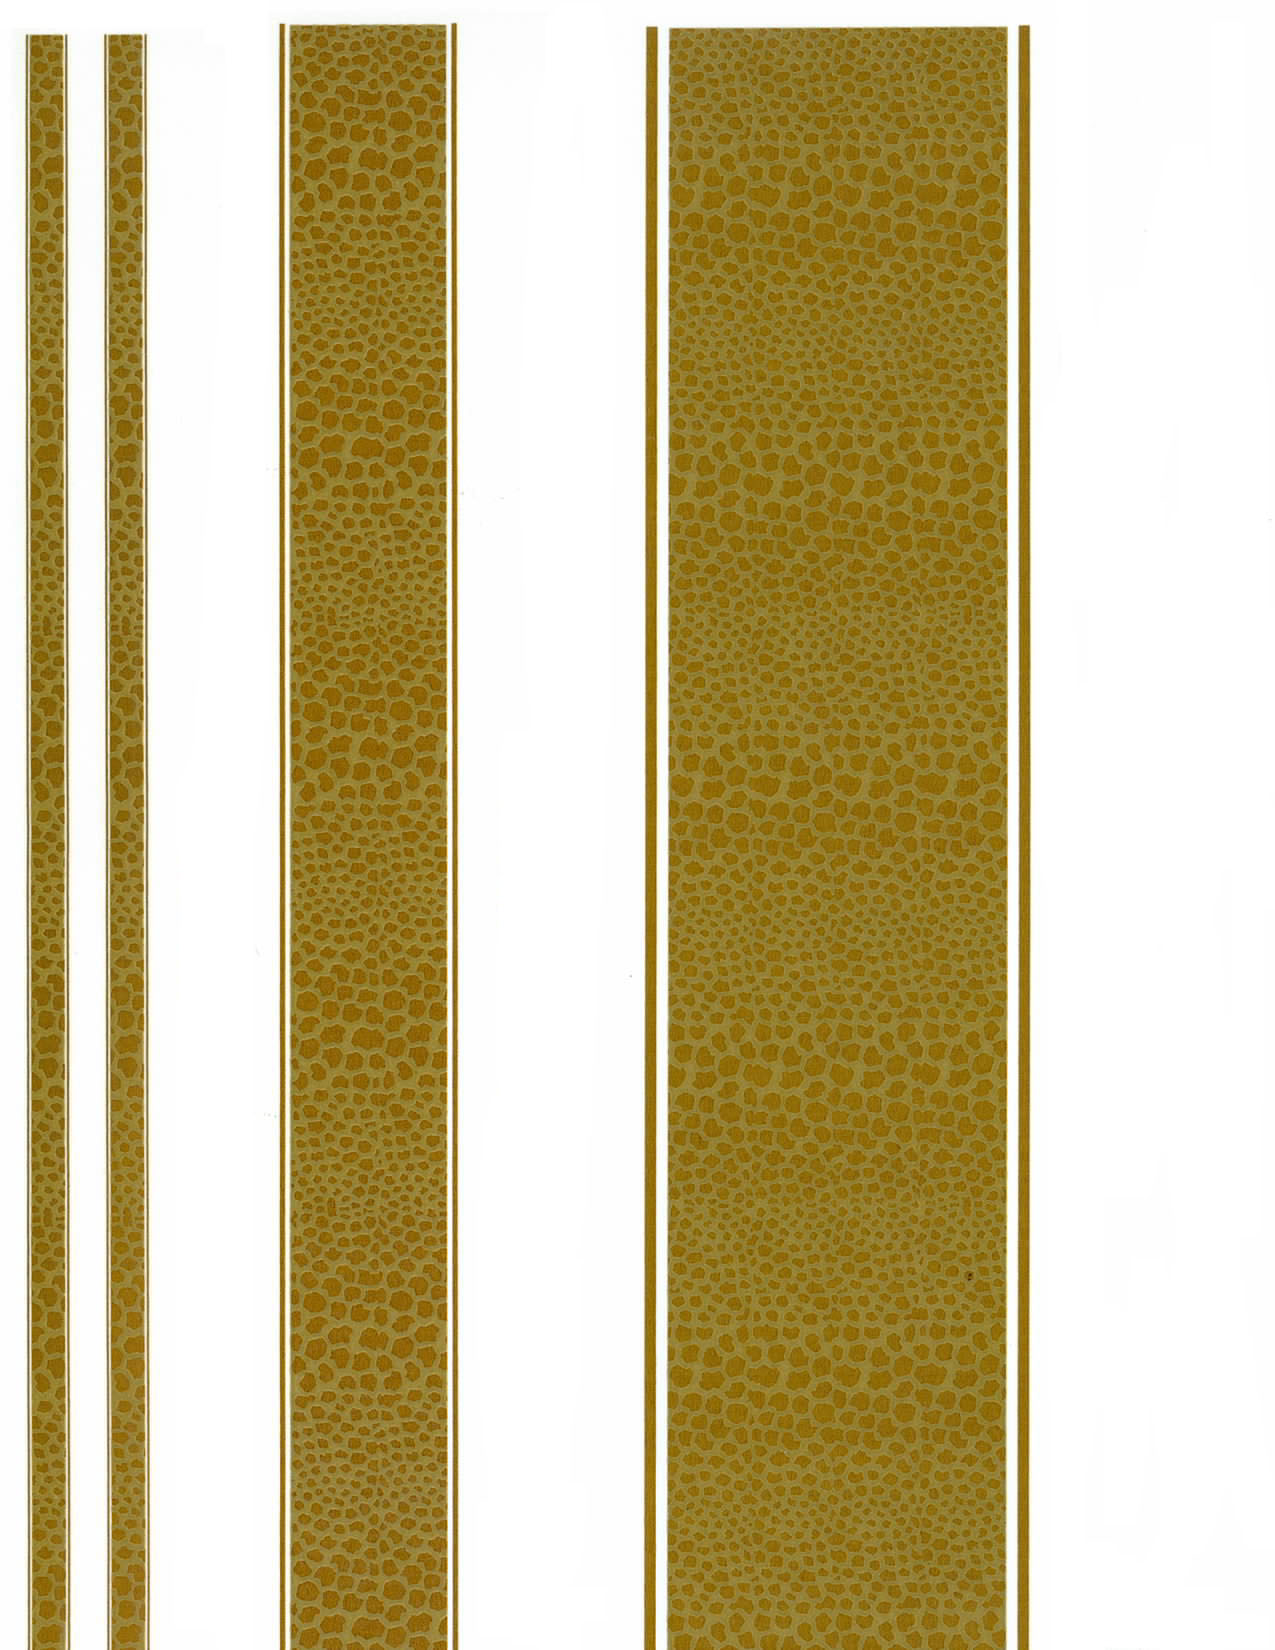 AG55853B SOLID GOLD BORDERS